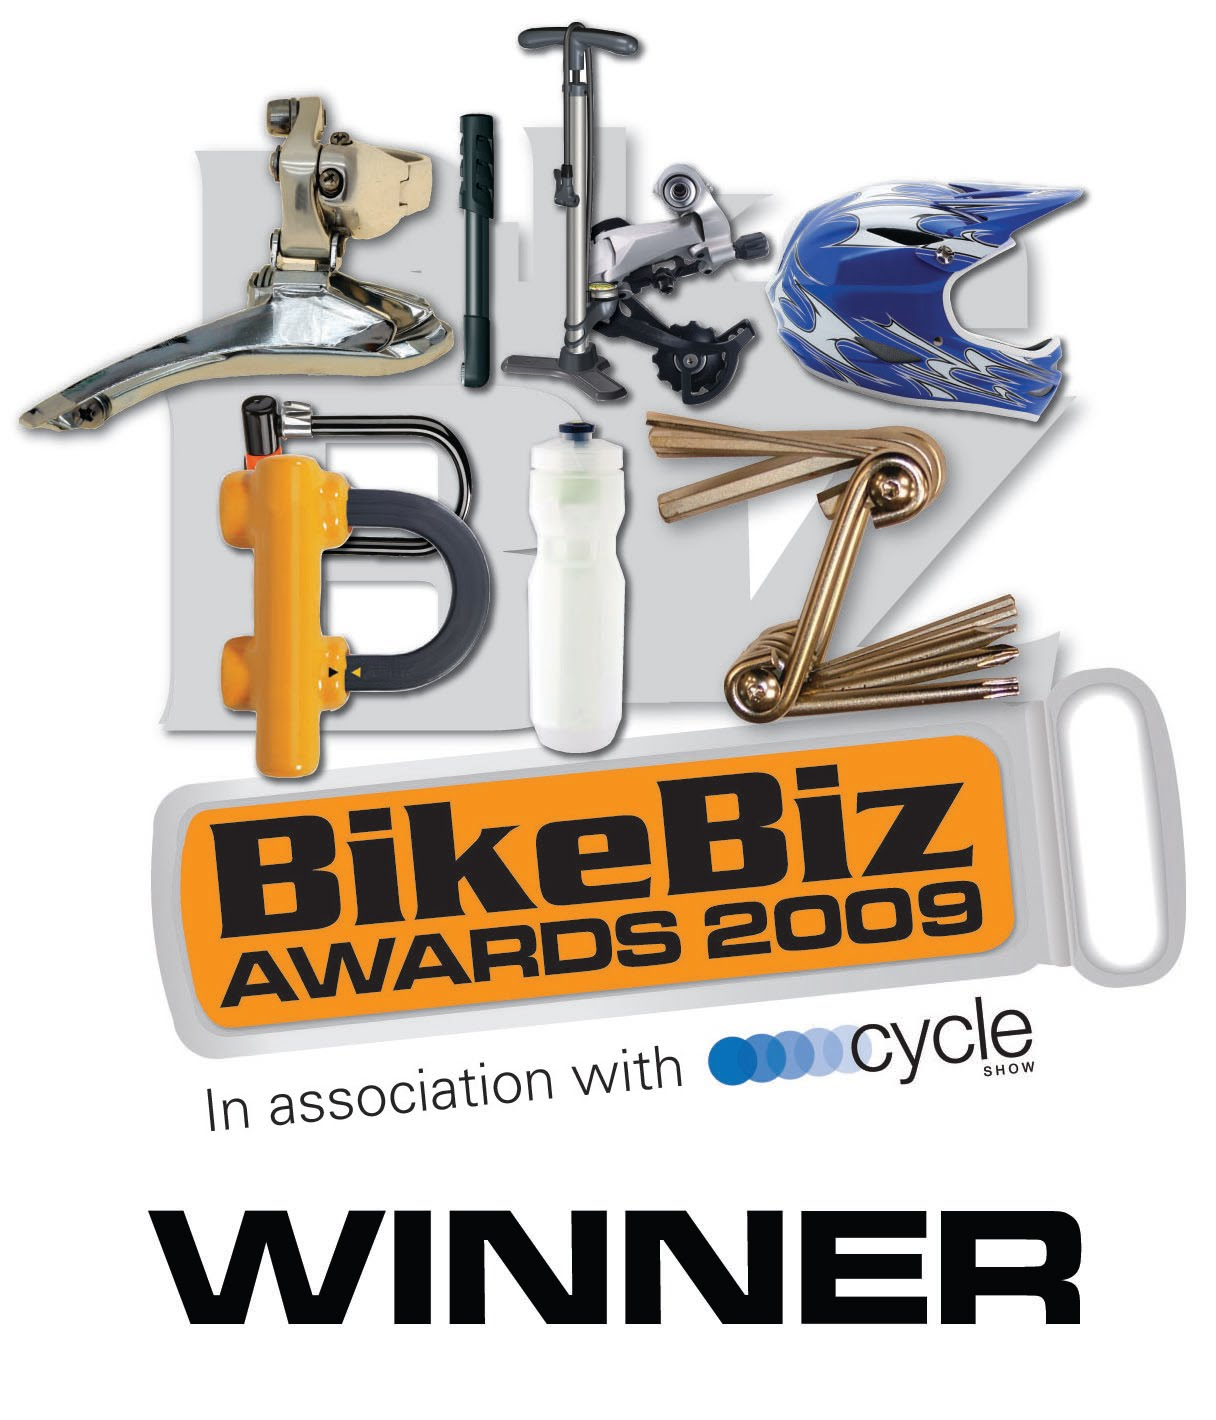 BikeBiz Awards 2009 Winner